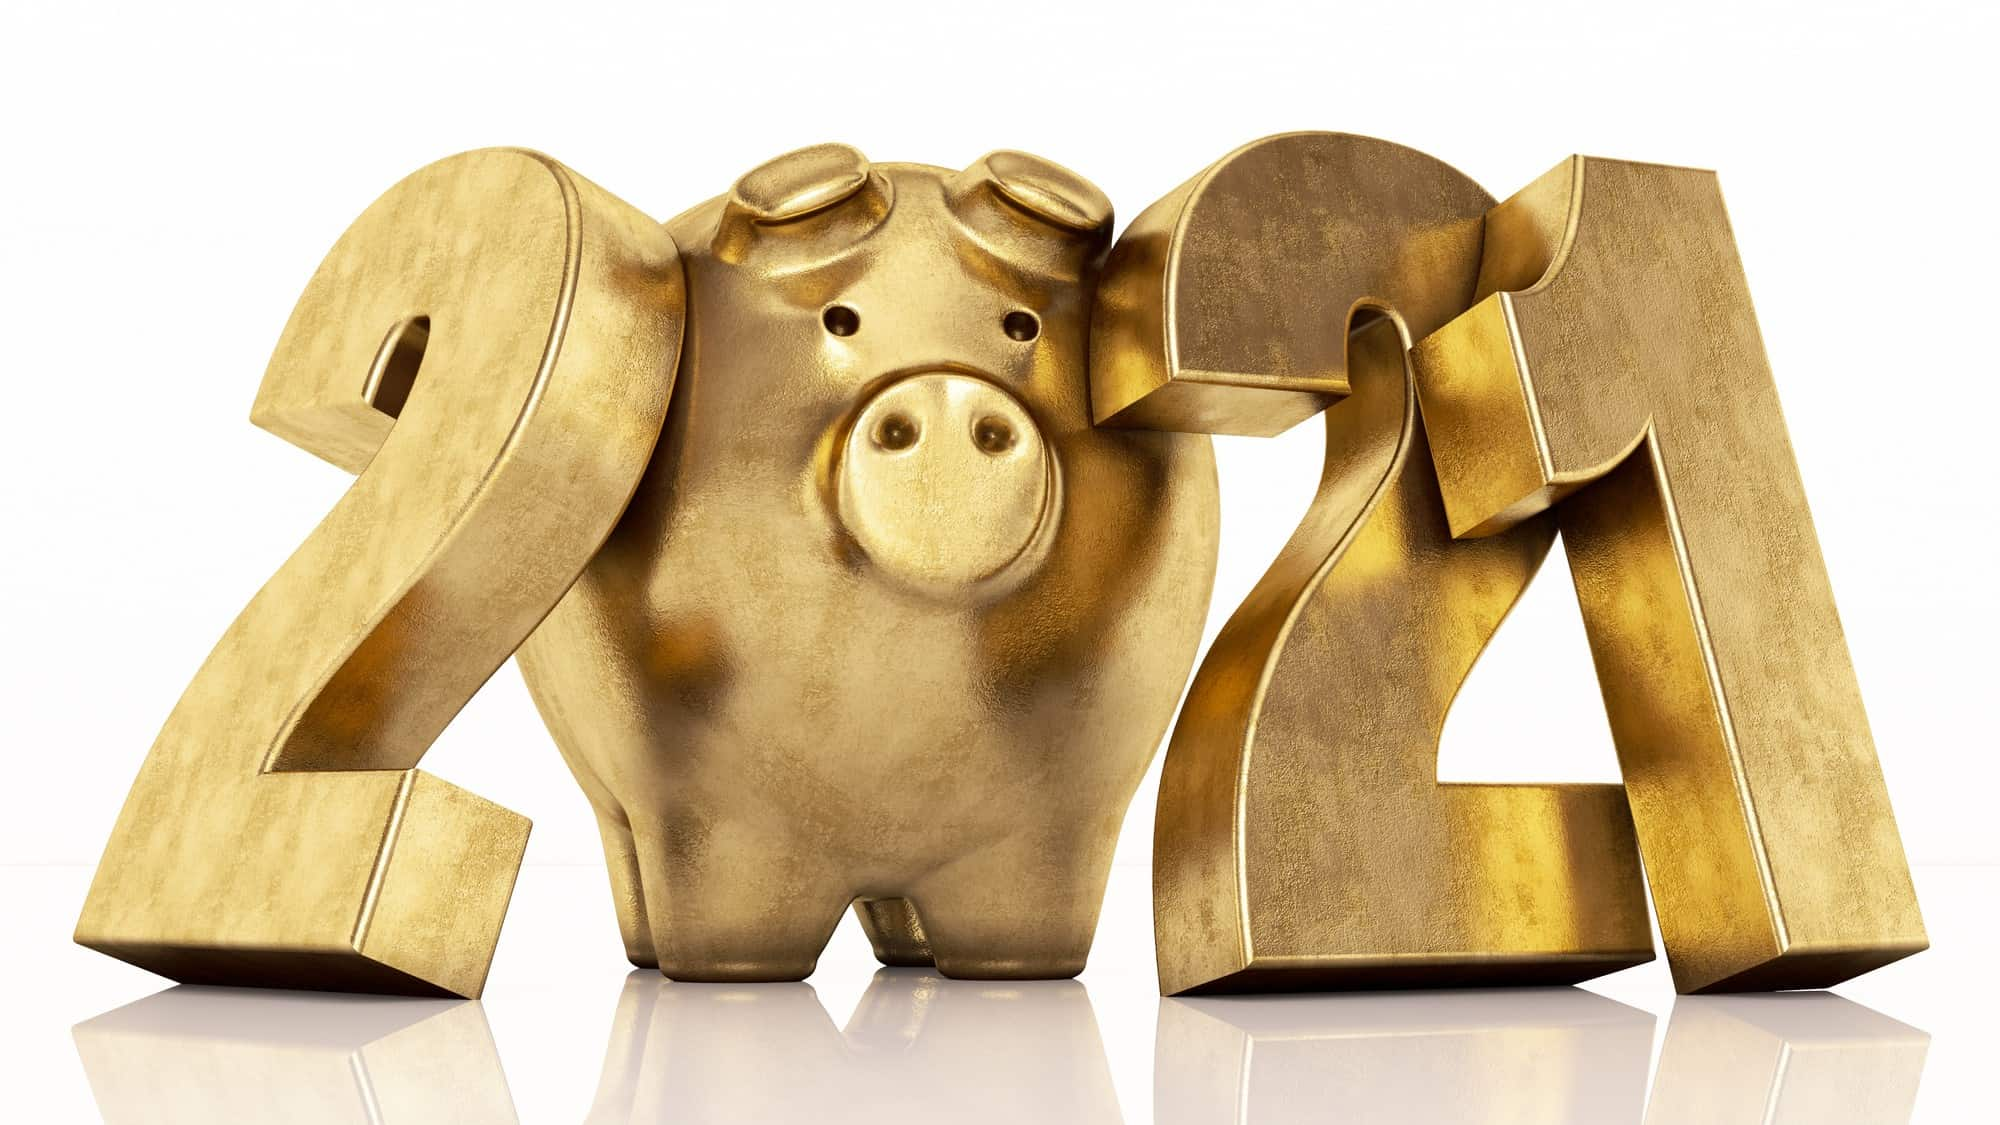 best asx shares to buy in january represented by 2021 formed with gold piggy bank